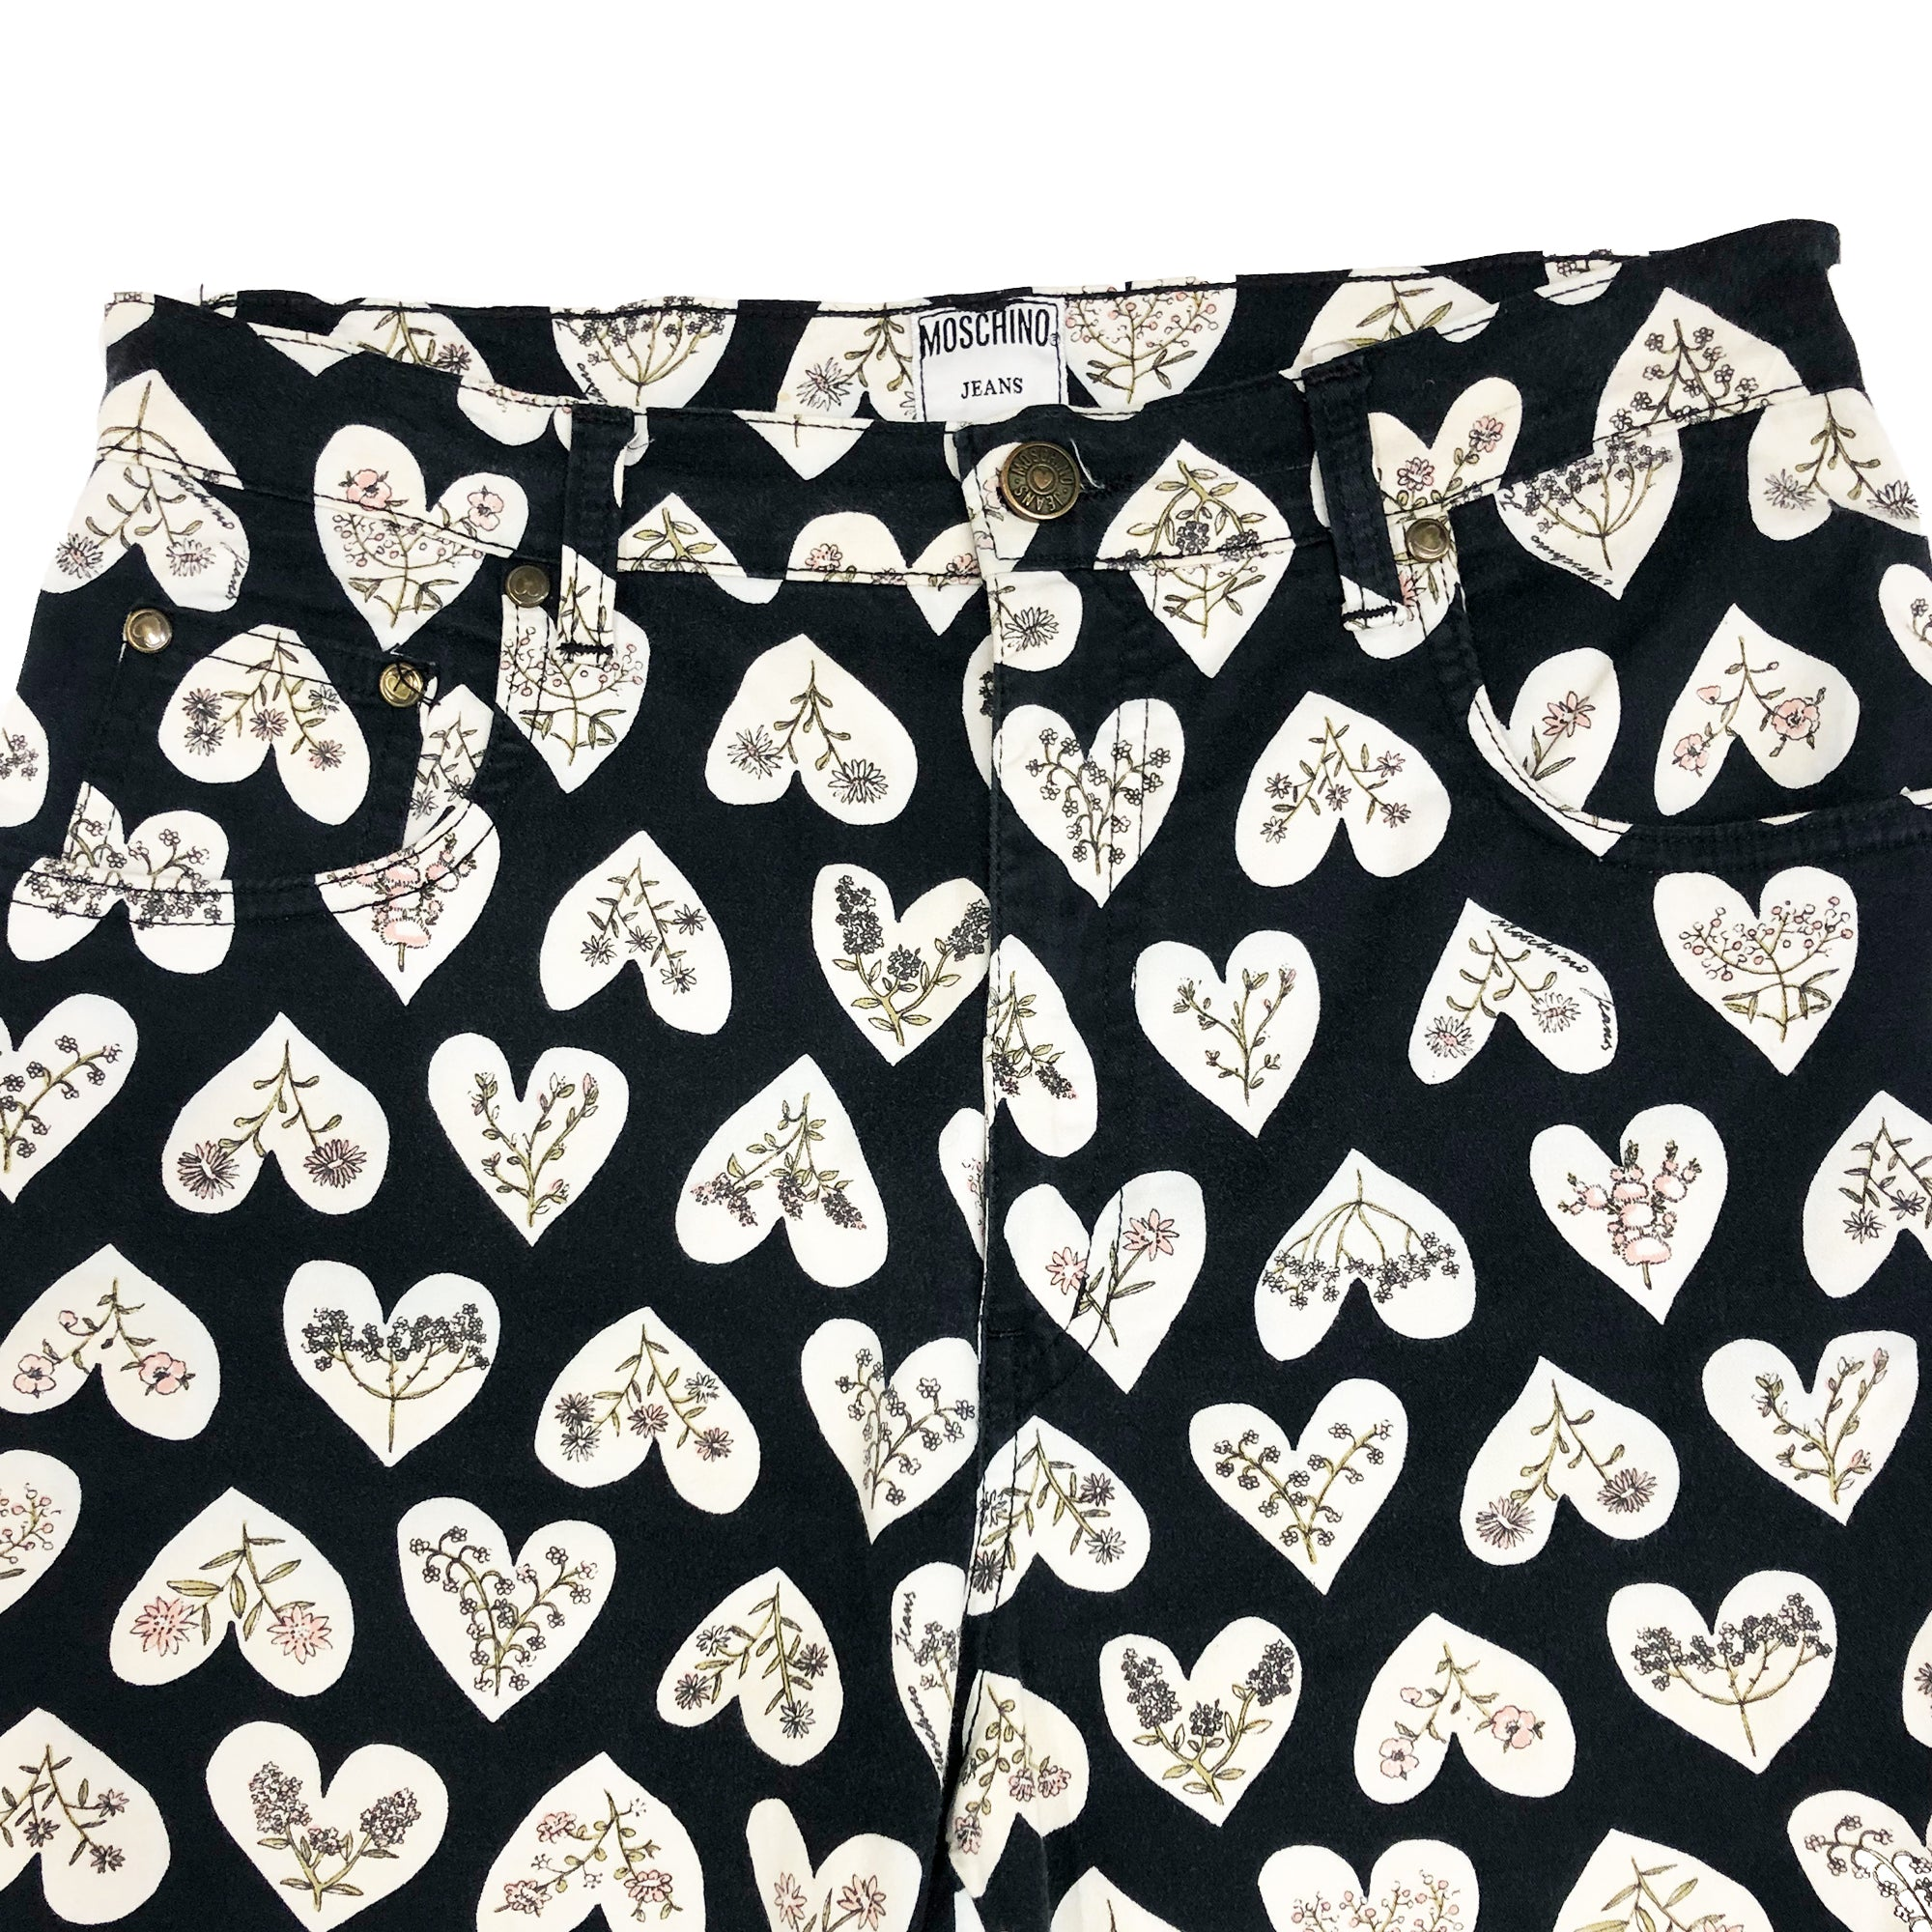 Moschino Hearts and Floral Pant (Multi) UK 12